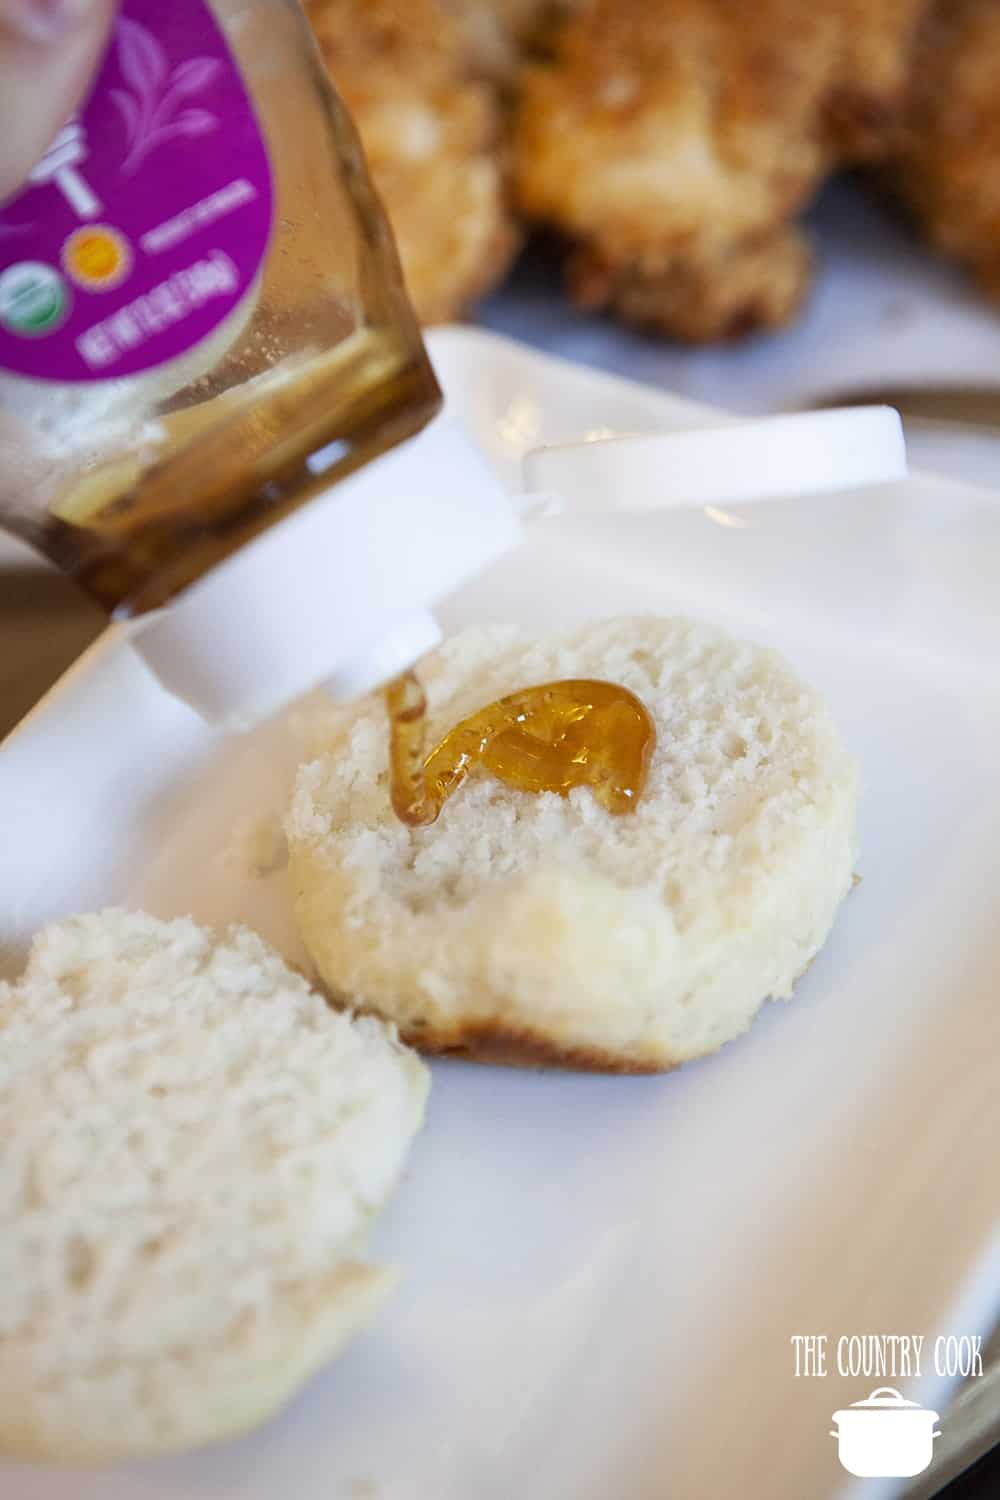 pouring honey on a homemade biscuit